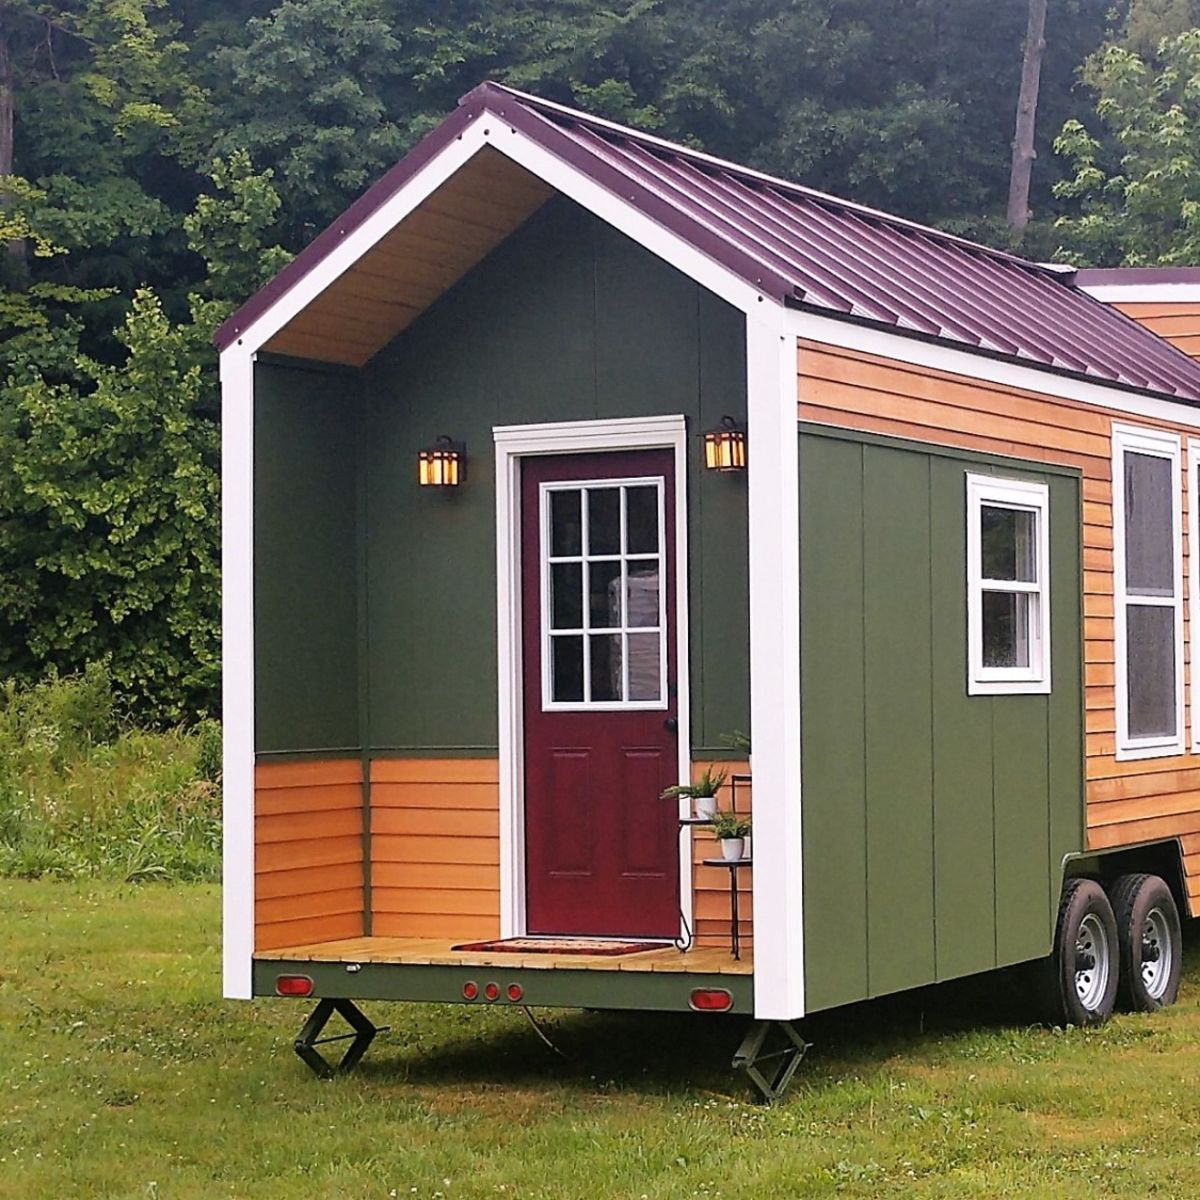 Kingfisher Tiny House For Sale In Evansville Indiana Tiny House Listings Tiny House Tiny House Luxury Tiny House Listings